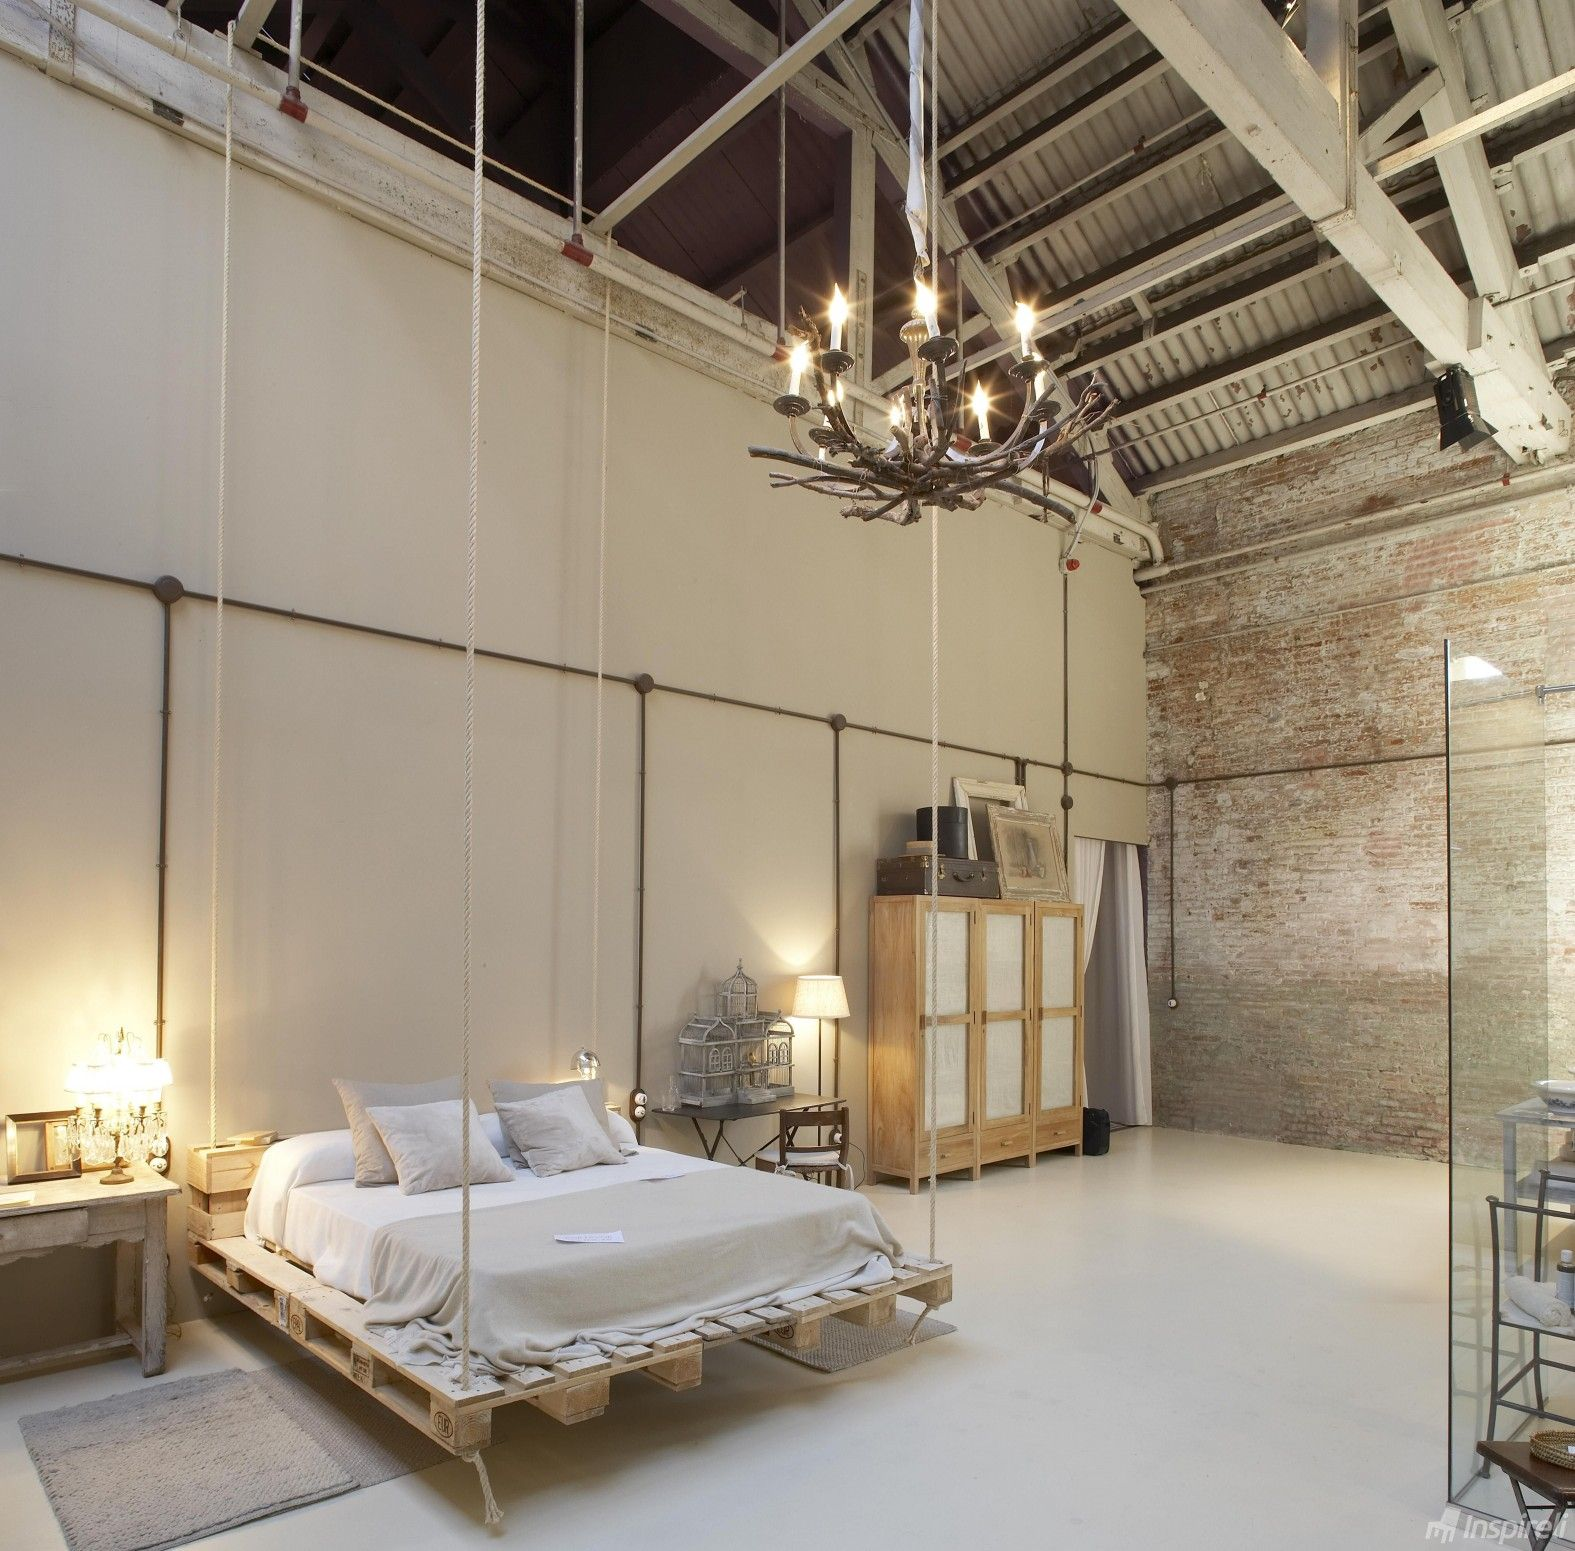 Bedroom Furniture Design Trends 2016. Unusual radical loft design for the former commercial premises with swing bad